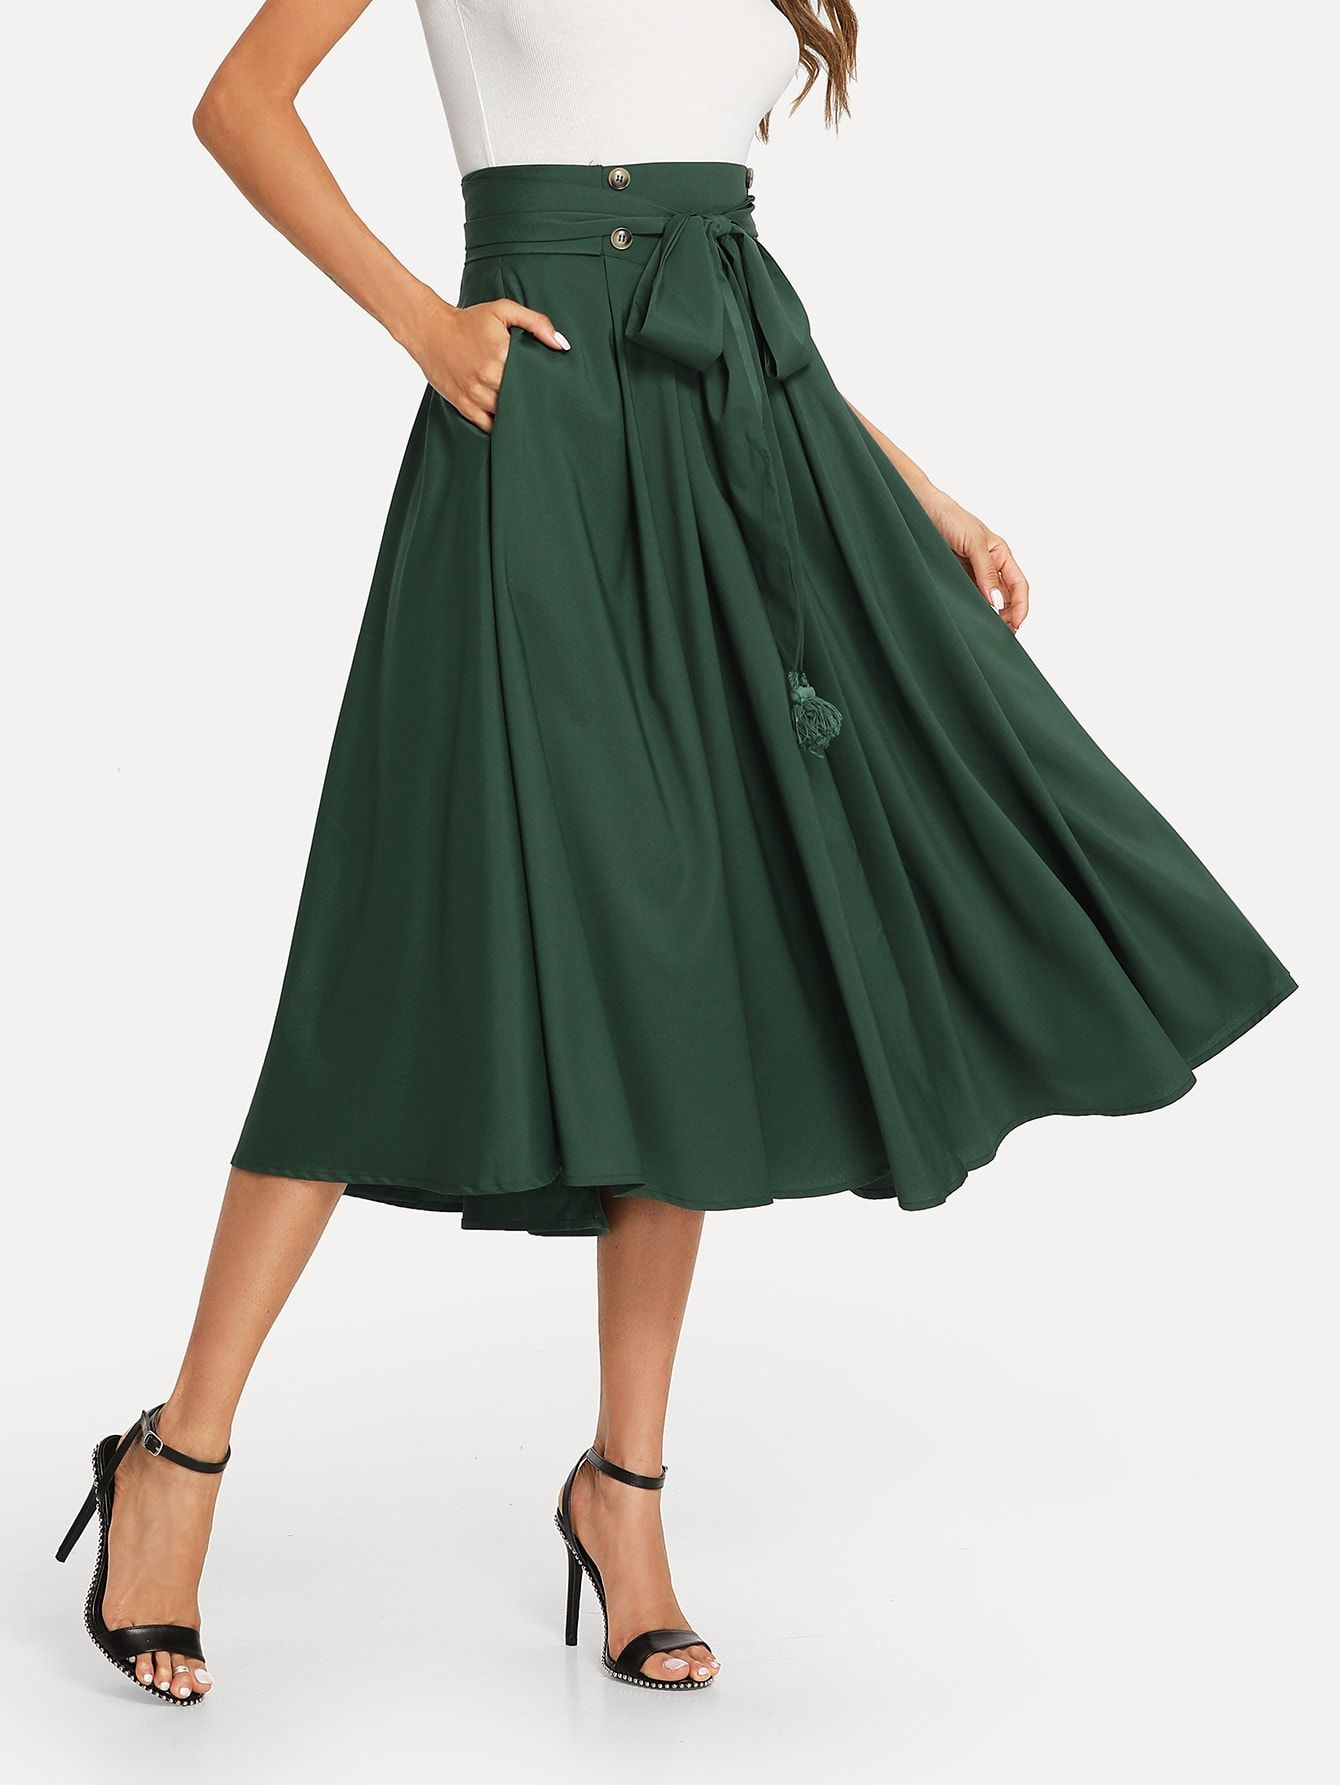 b953e3c0de87f9 Elegant A Line Plain Flared High Waist Green Long/Full Length Tassel Bow  Tie Waist Pocket Side Pleated Skirt with Belt